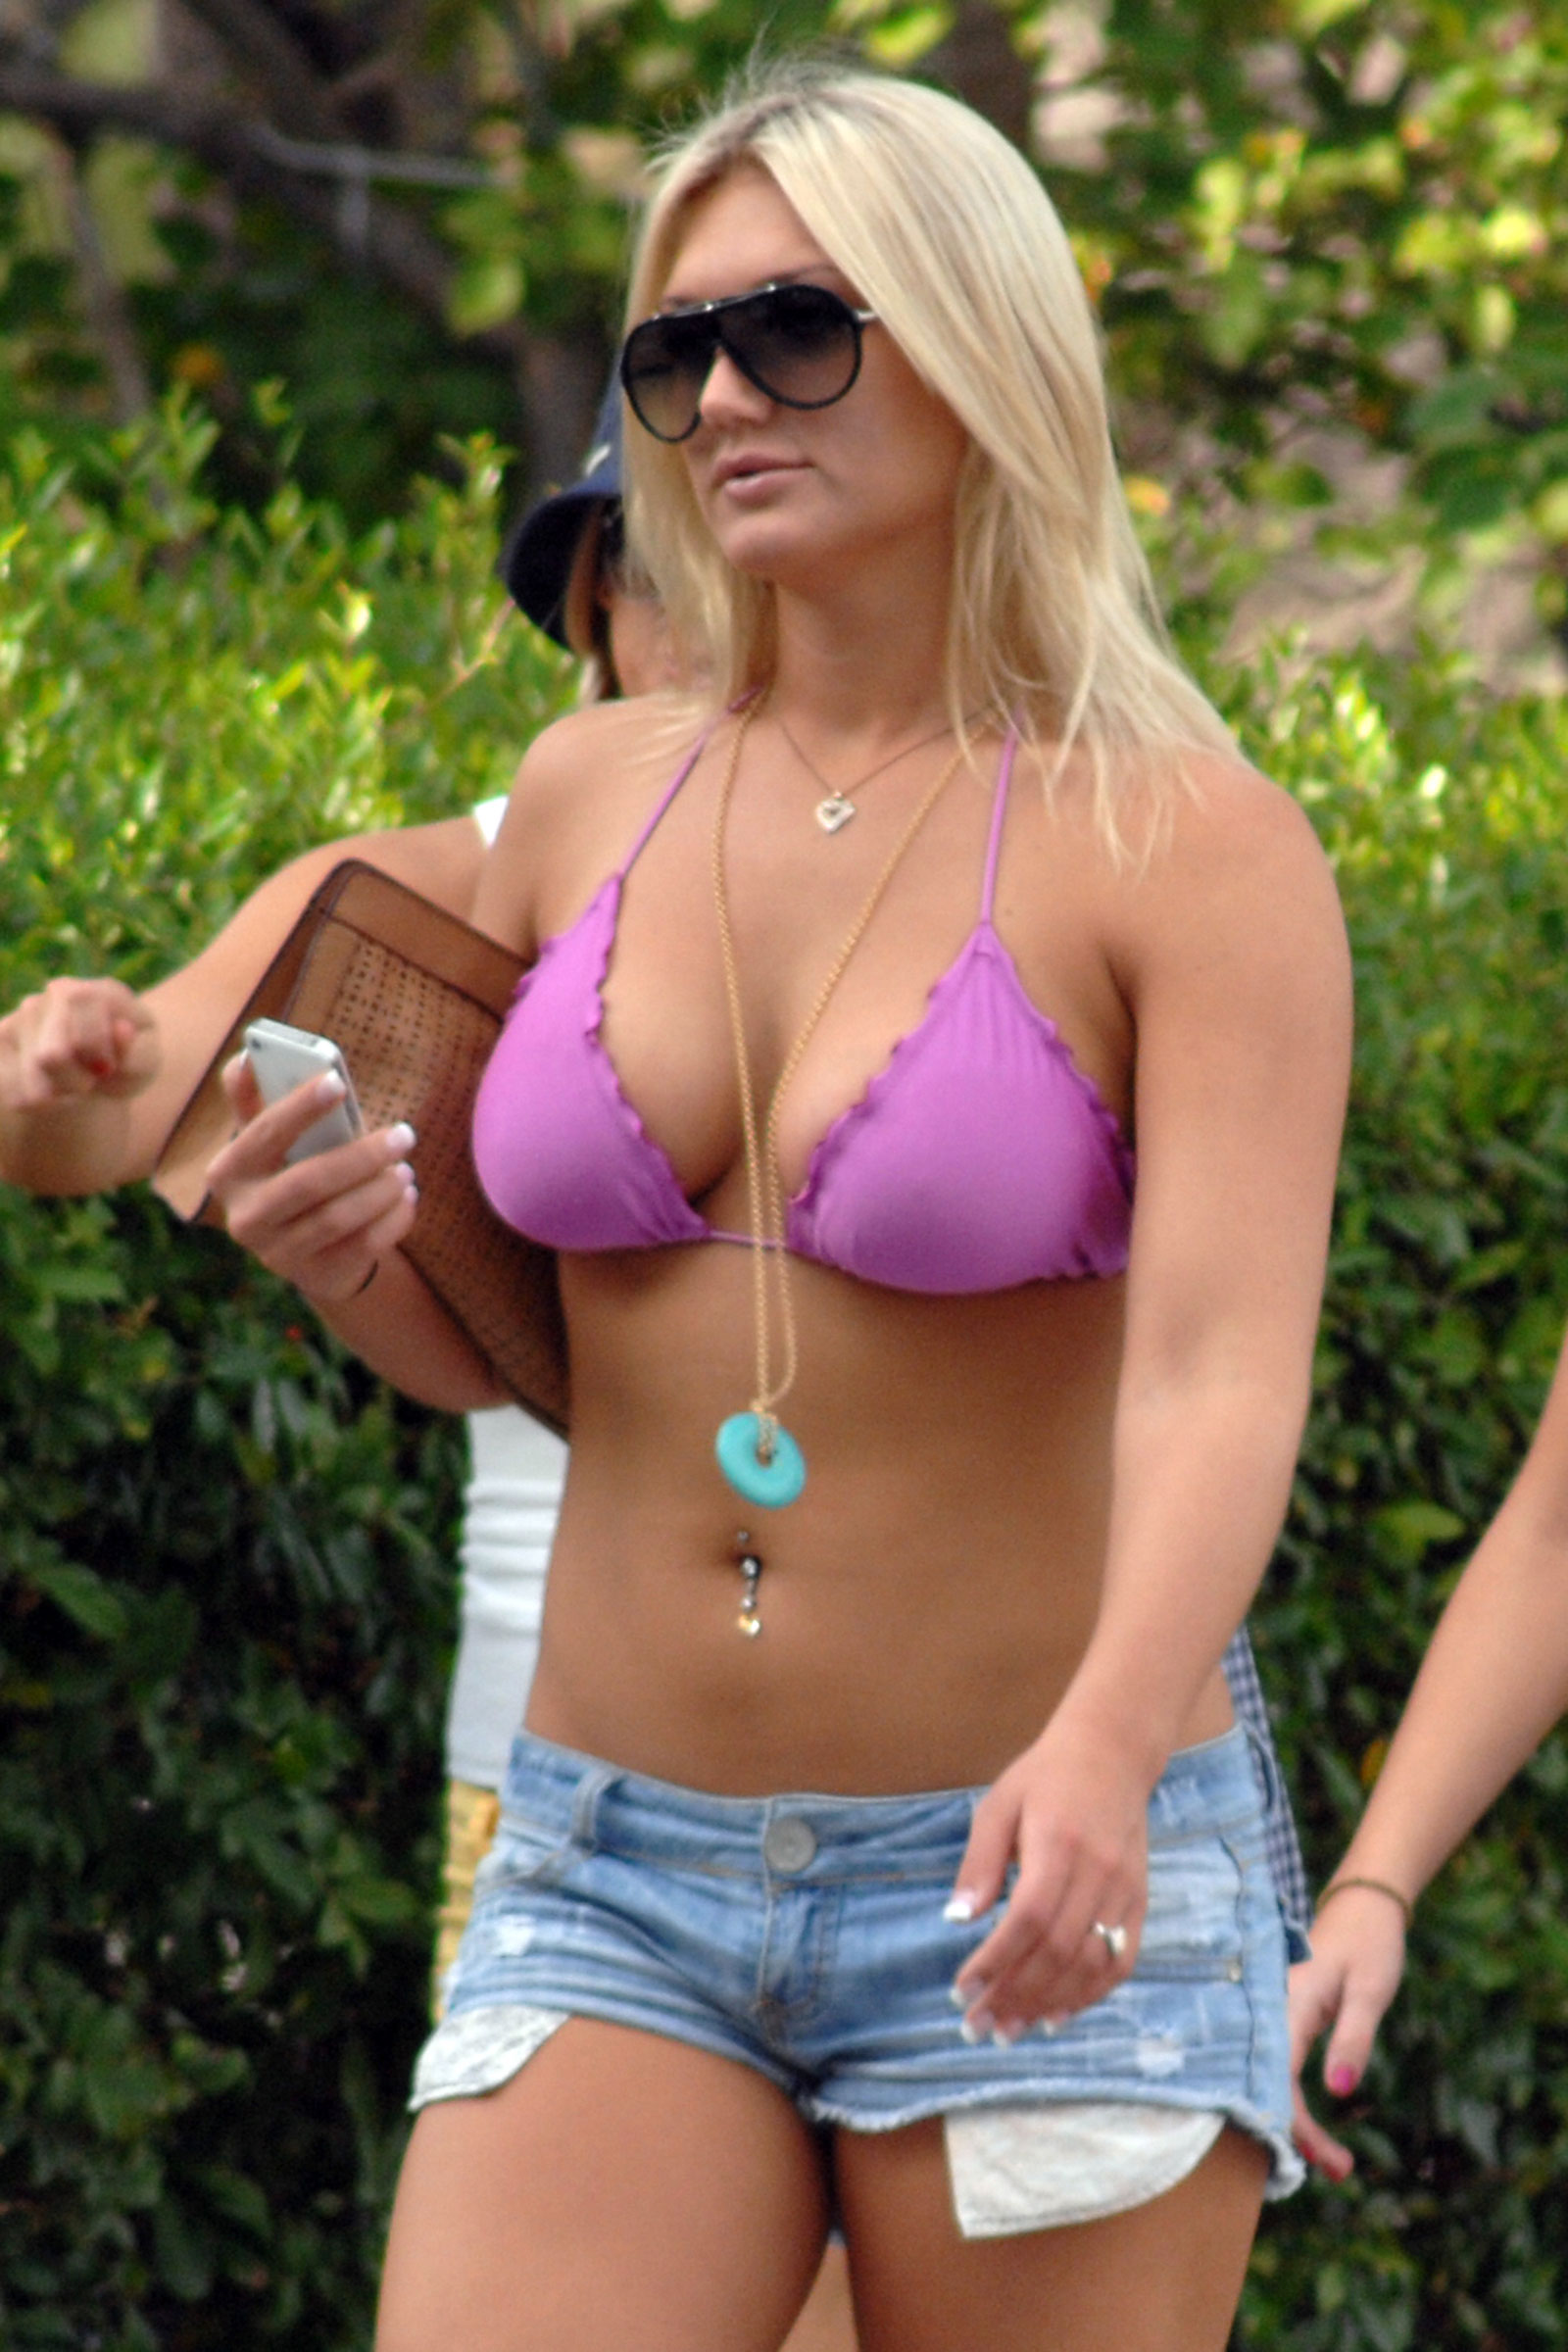 Opinion the Nude brooke hogan thong apologise, but